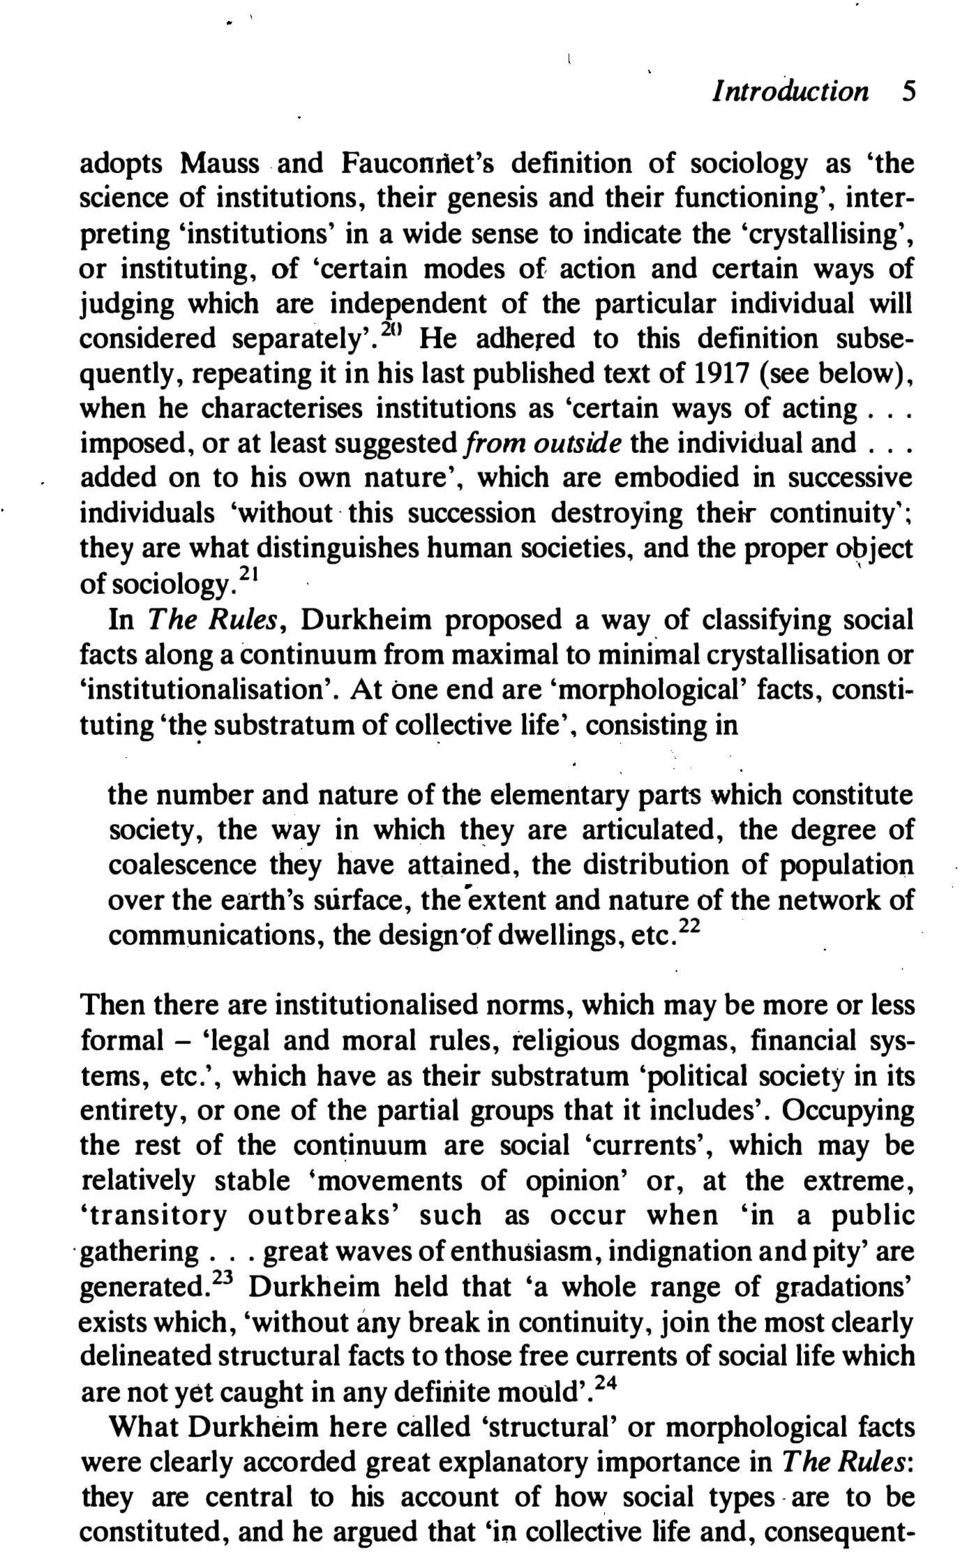 2U He adhered to this definition subsequently, repeating it in his last published text of 1917 (see below), when he characterises institutions as 'certain ways of acting.